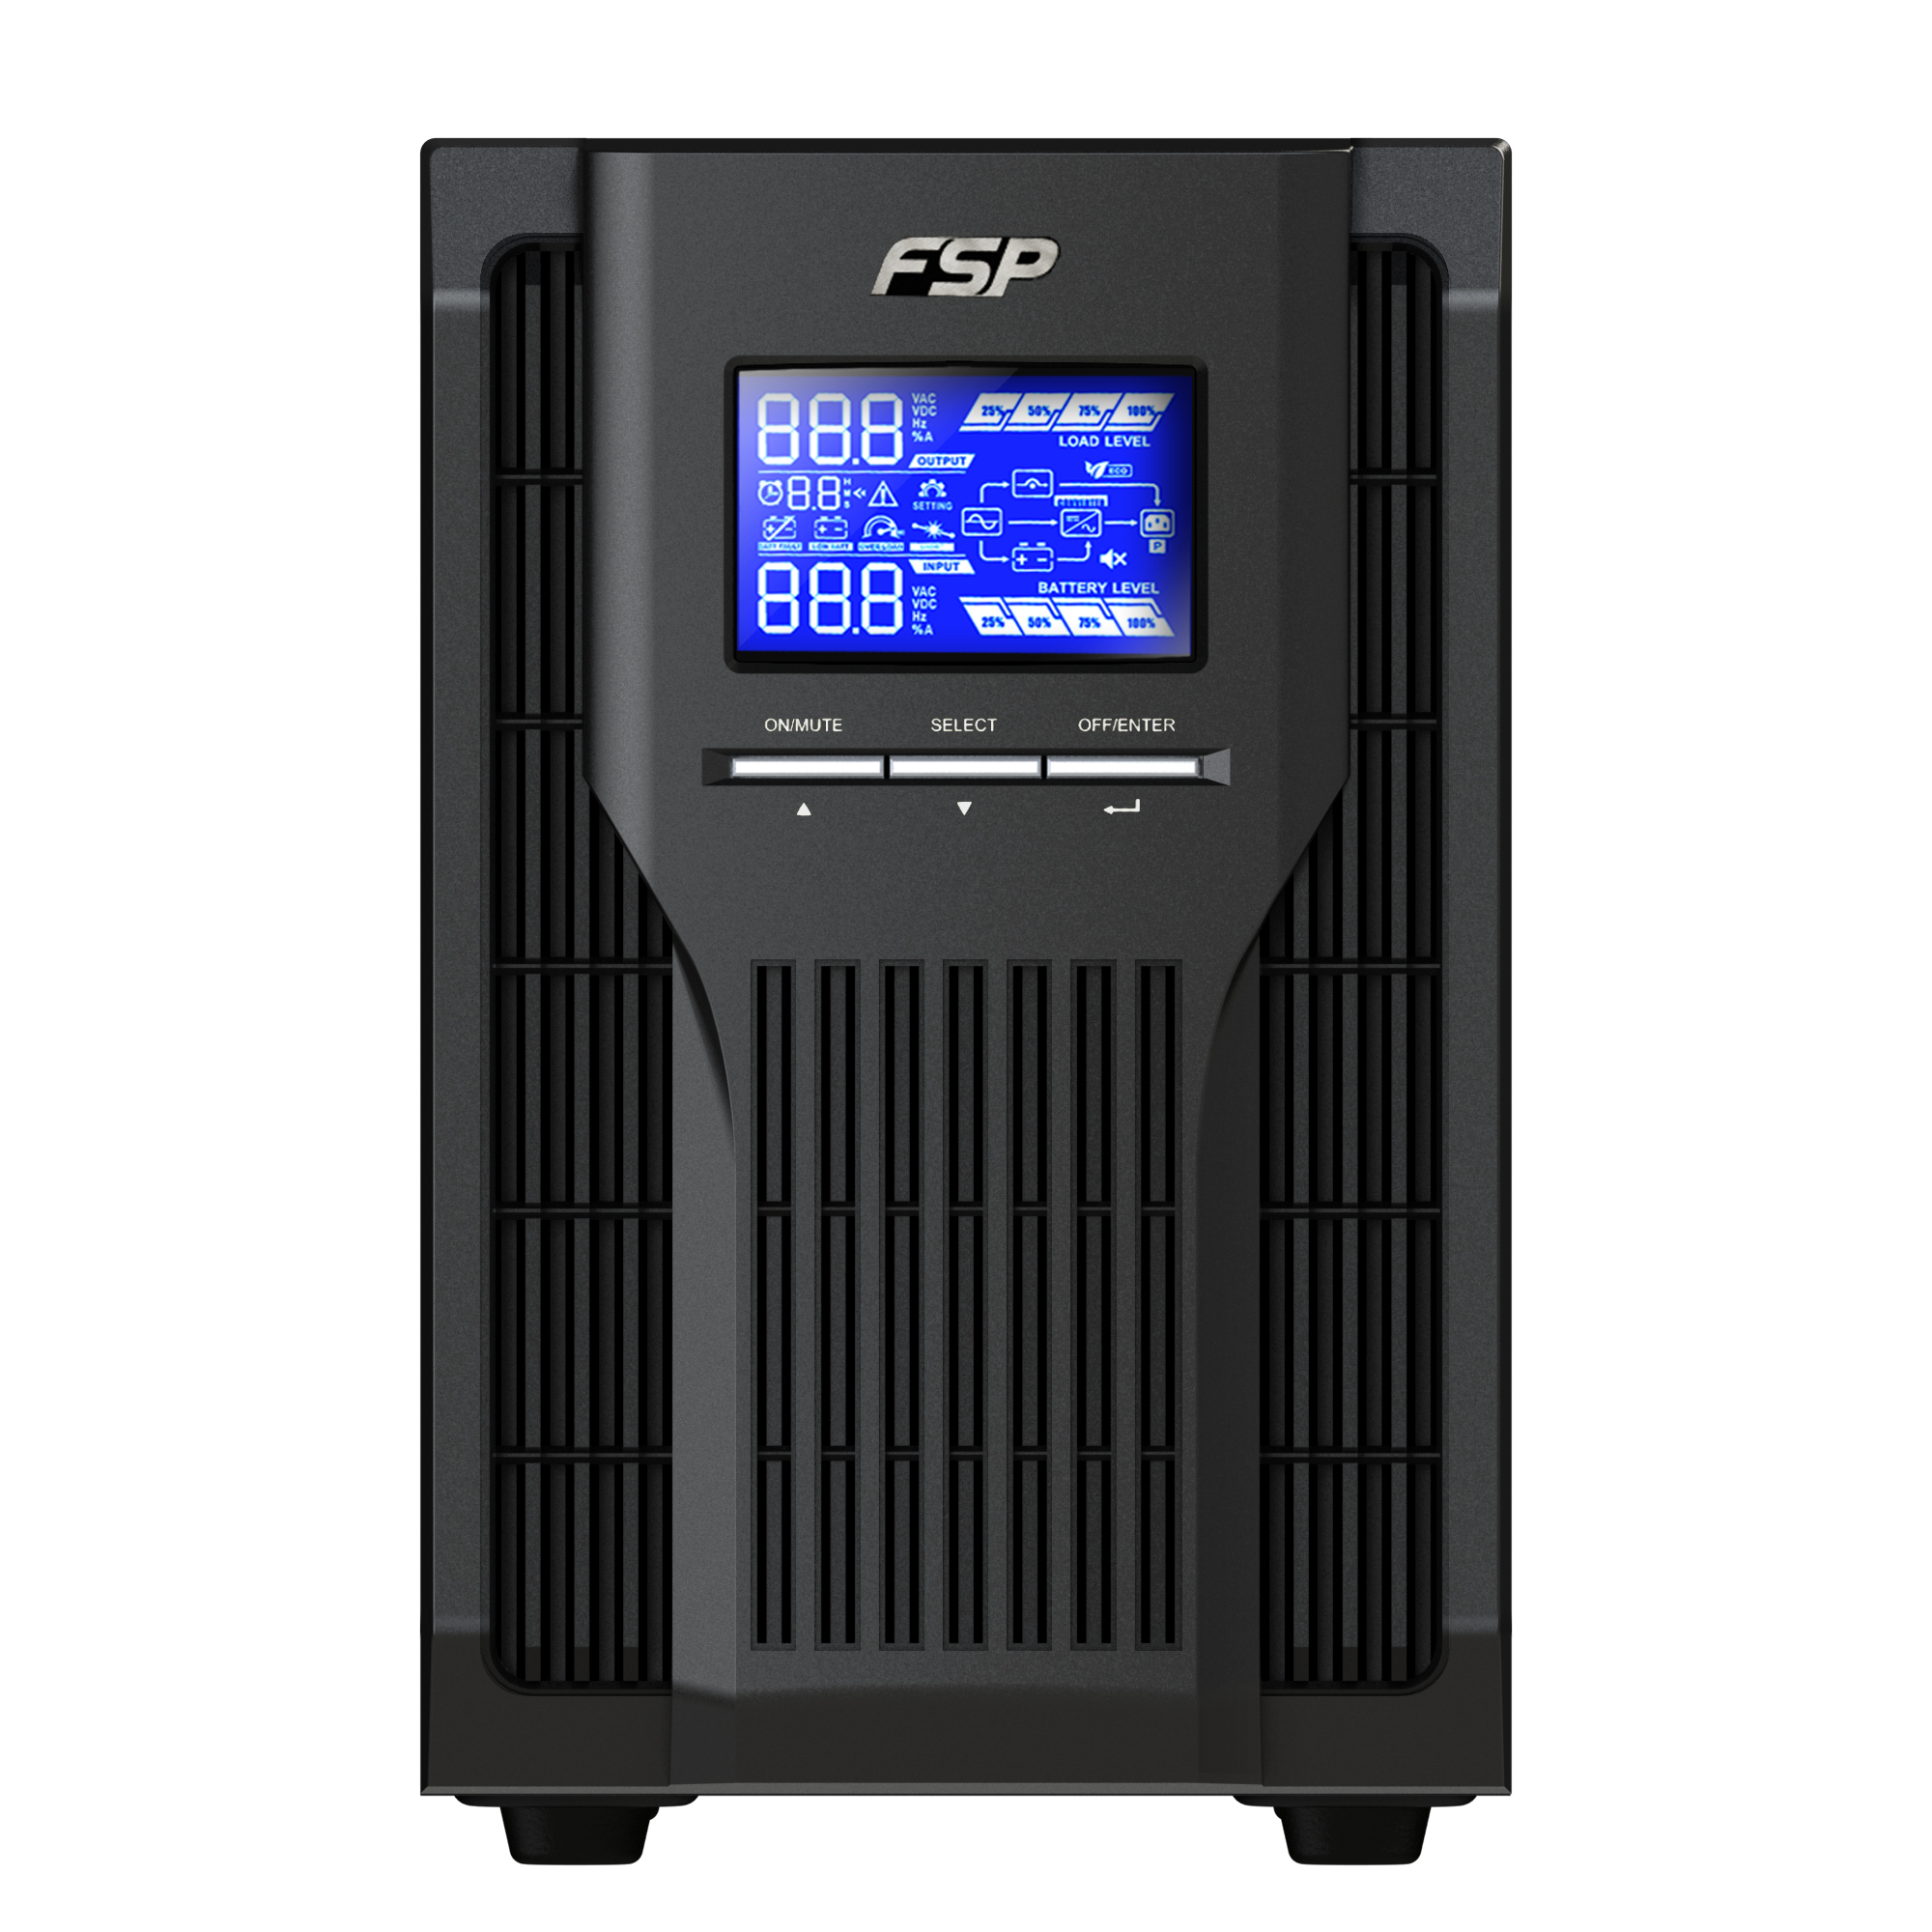 UPS CHAMP Series / FSP TECHNOLOGY INC.